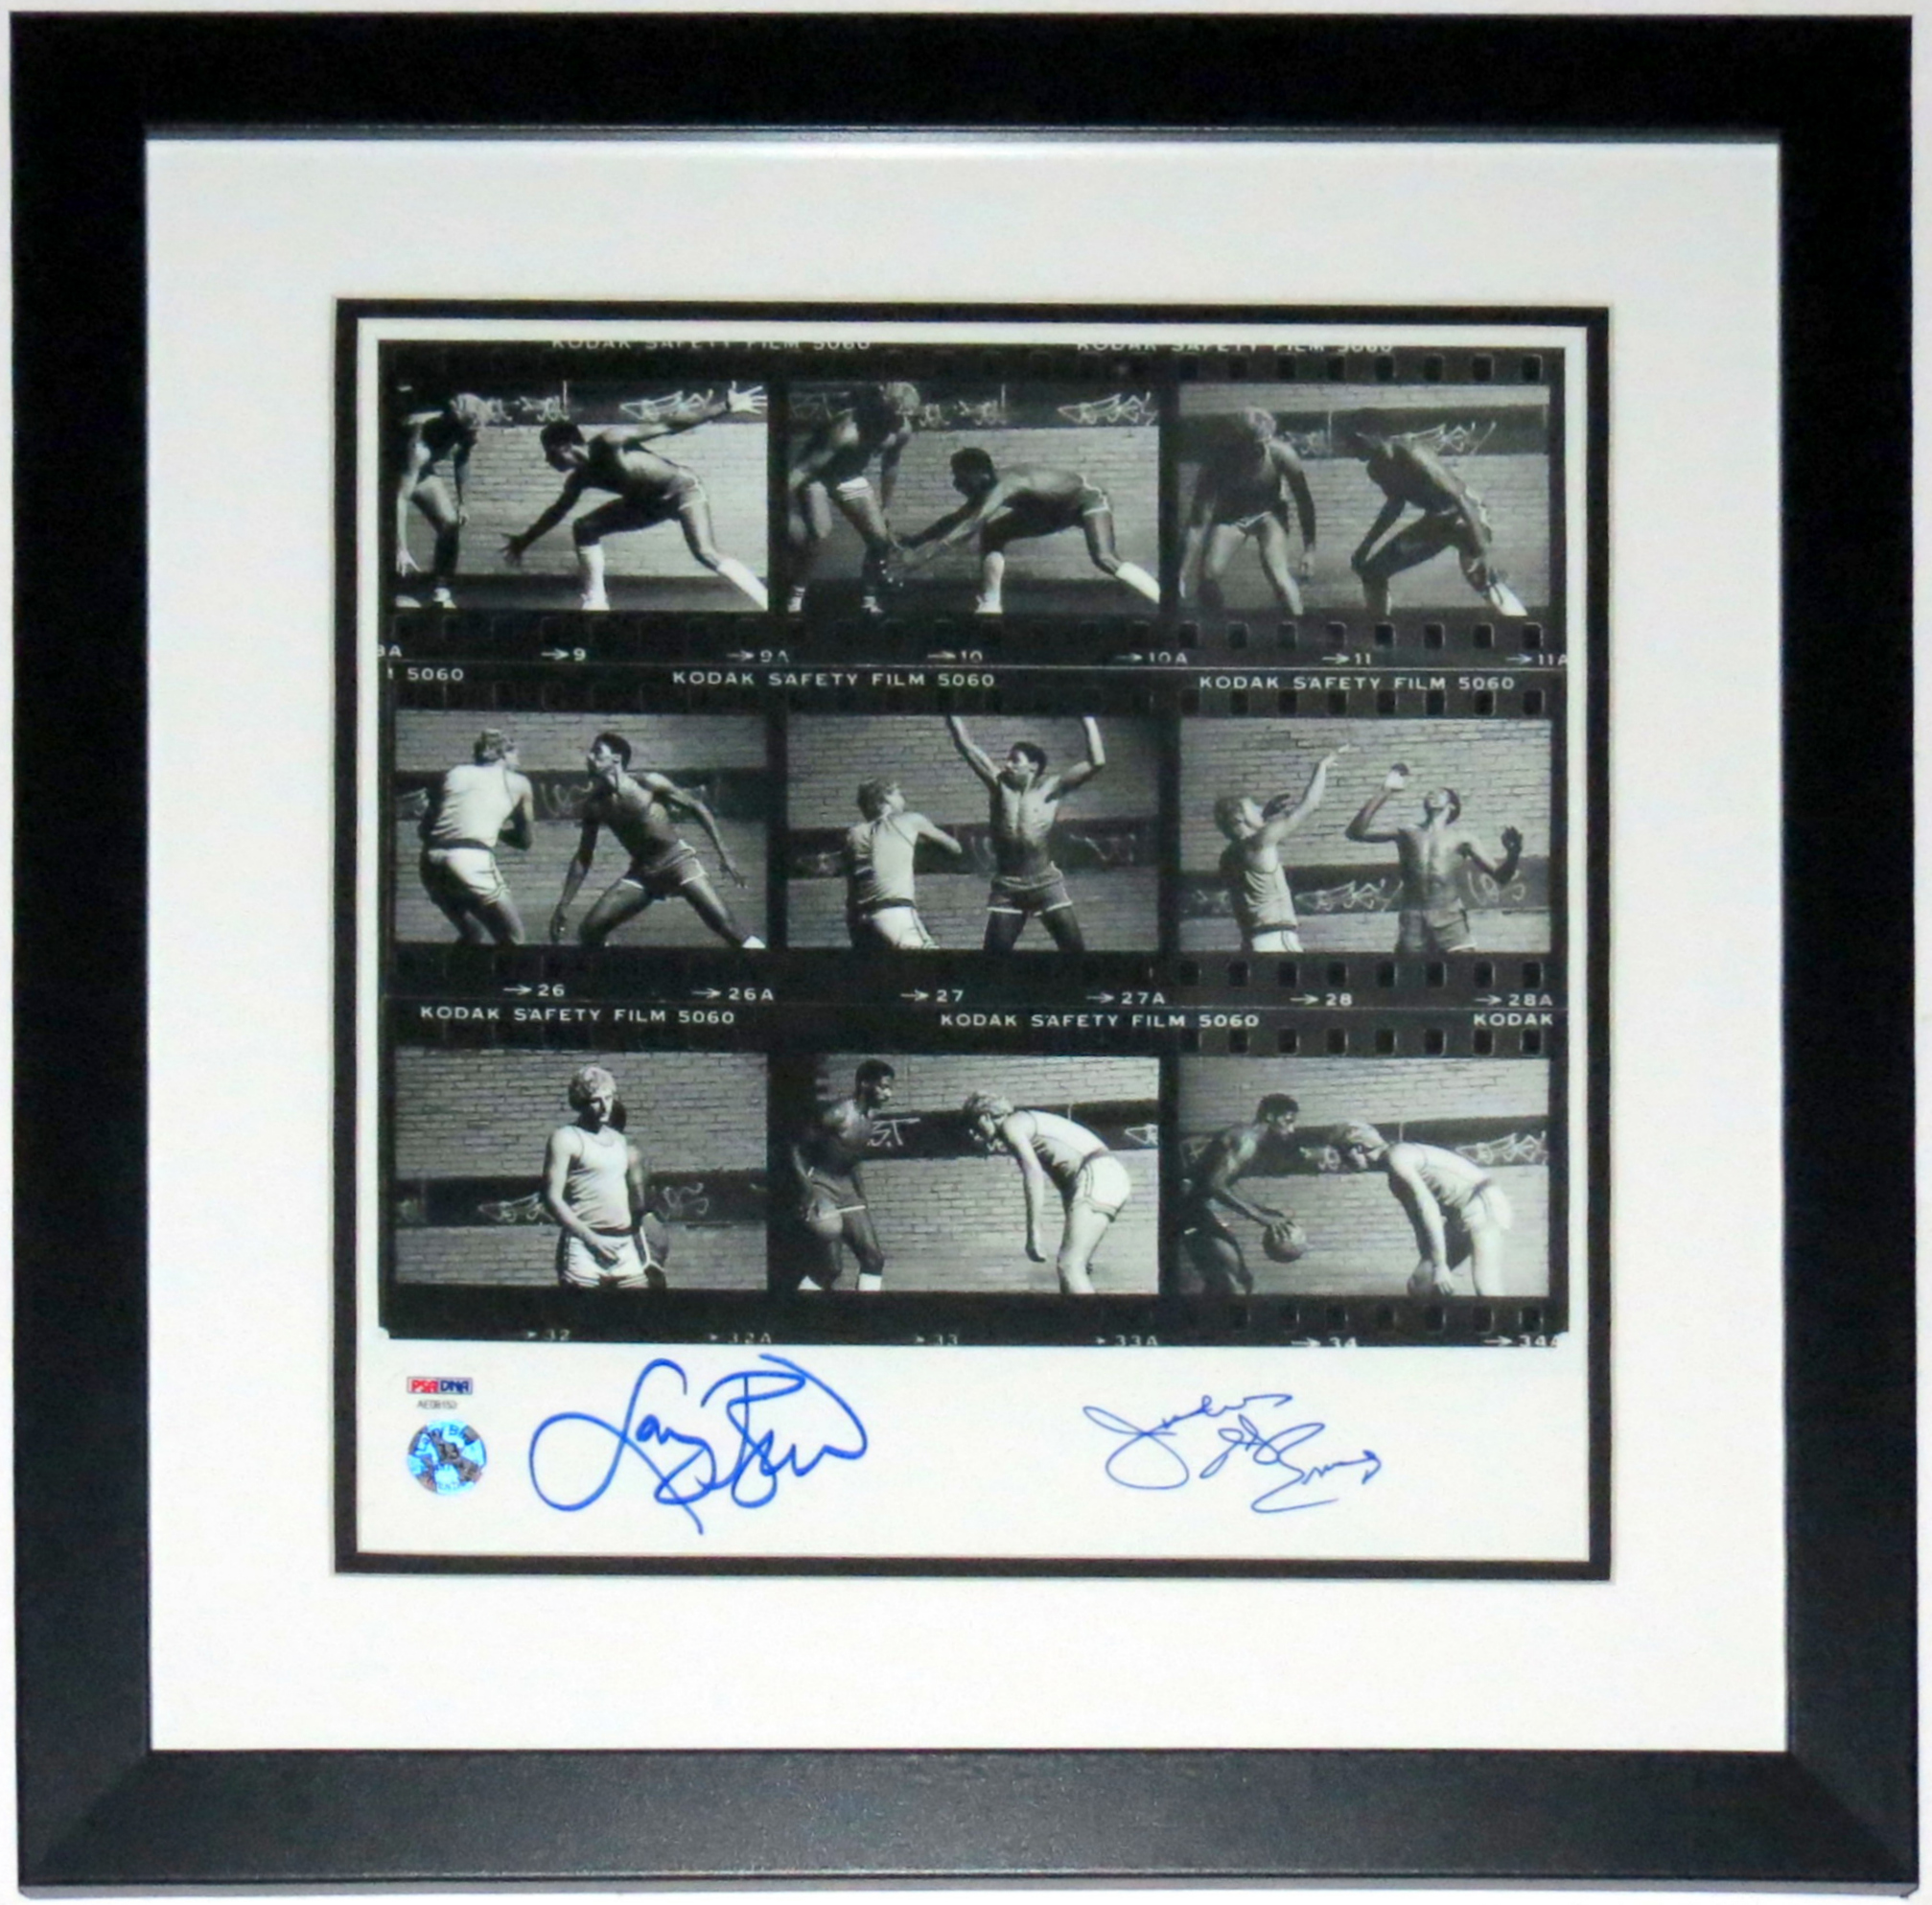 Larry Bird and Julius Erving Dr. J Dual Signed 12x12 Photo - PSA DNA COA Authenticated - Professionally Framed